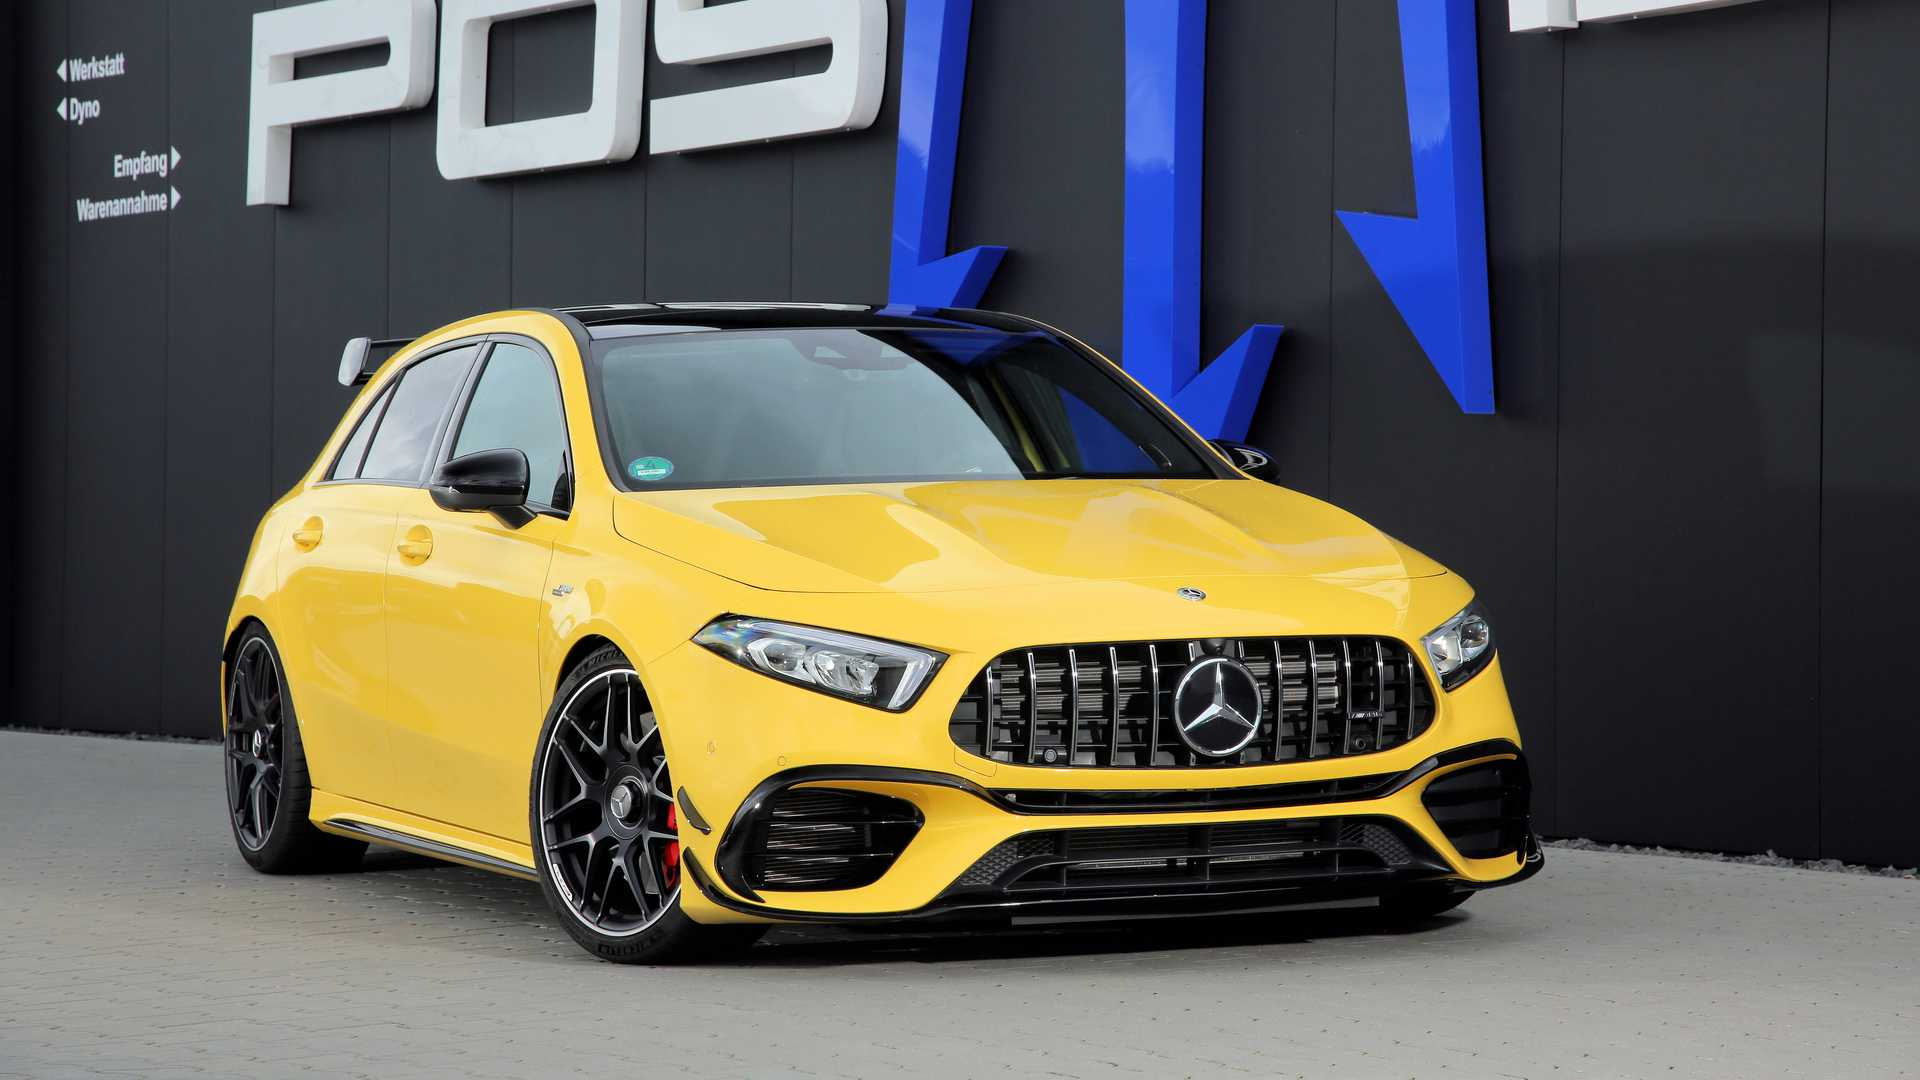 Posaidon Mercedes-AMG A45 RS